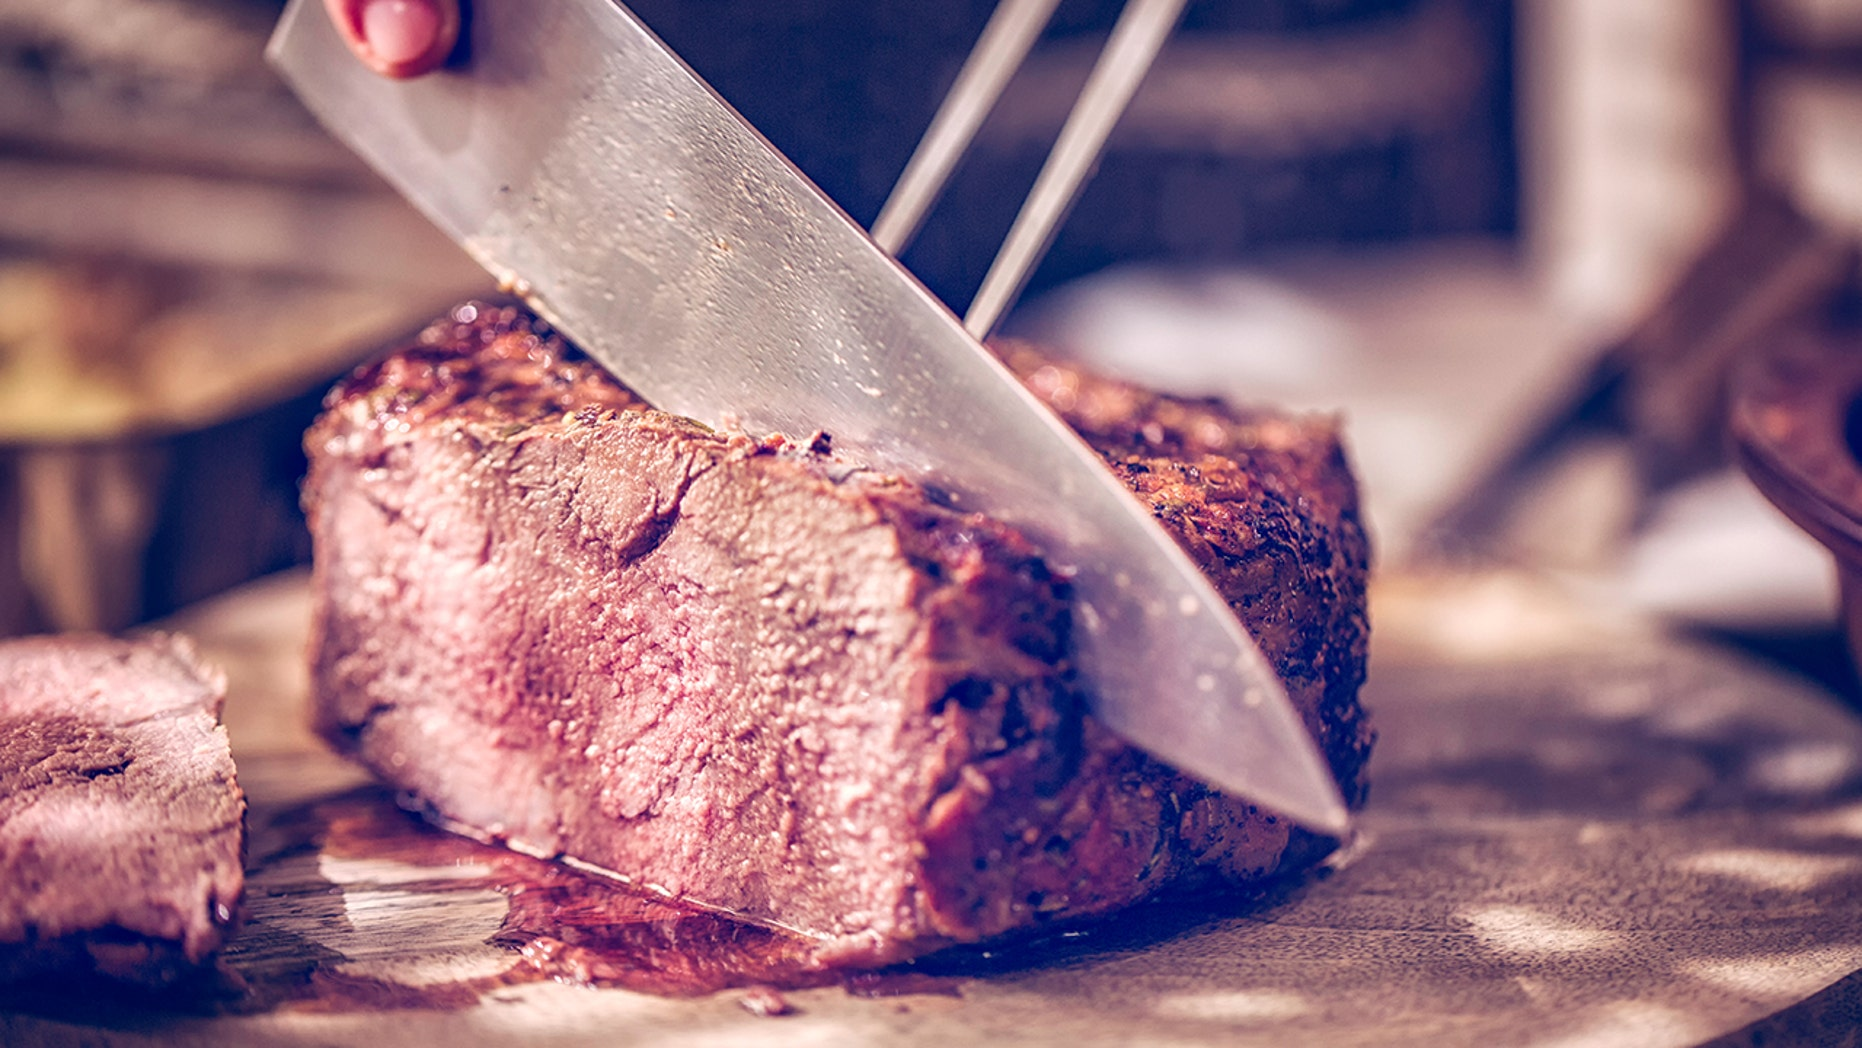 Try these tips to make tough meat more tender.